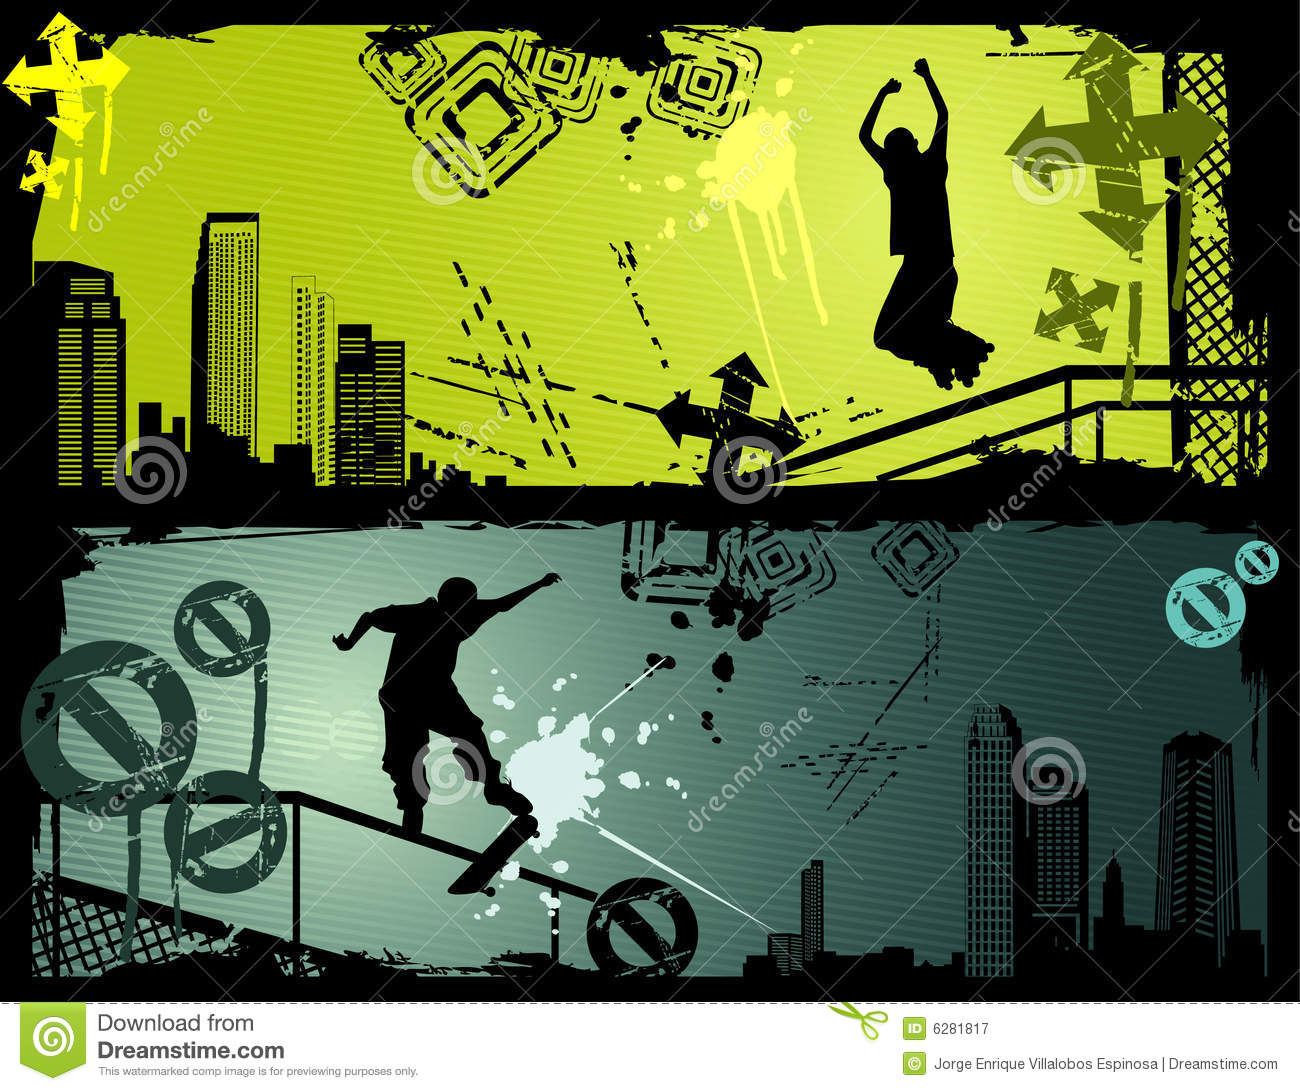 Extreme Sports: Extreme Sports Vector Stock Vector. Image Of Texture